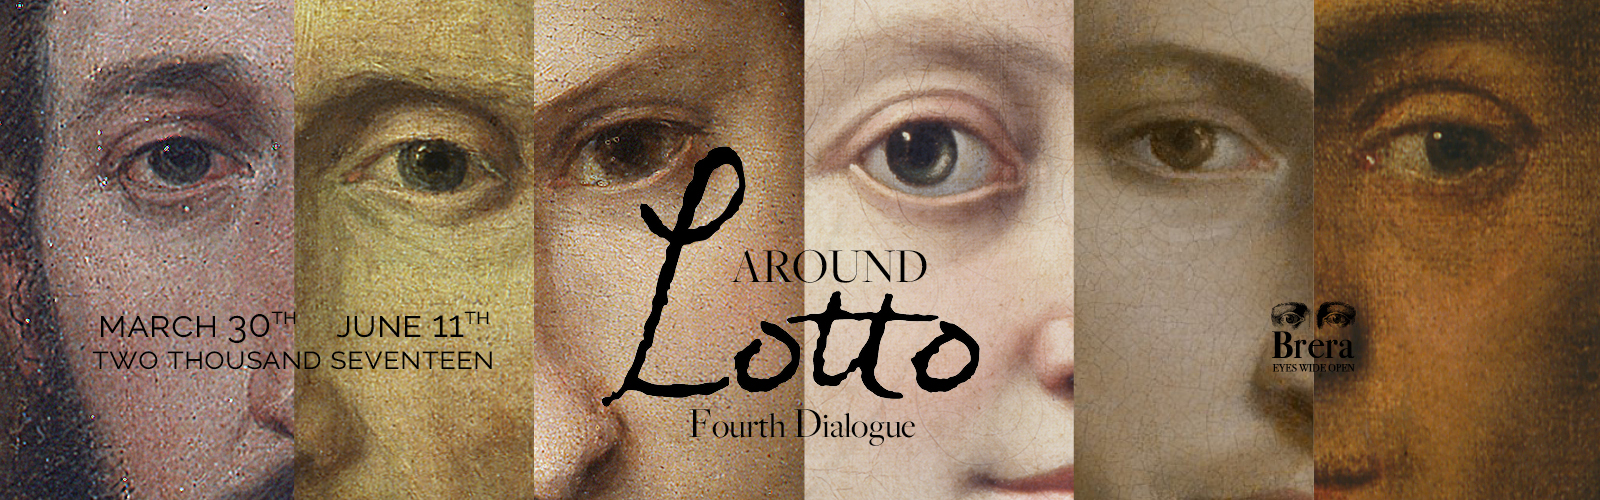 "Fourth Dialogue ""Around Lotto"" 